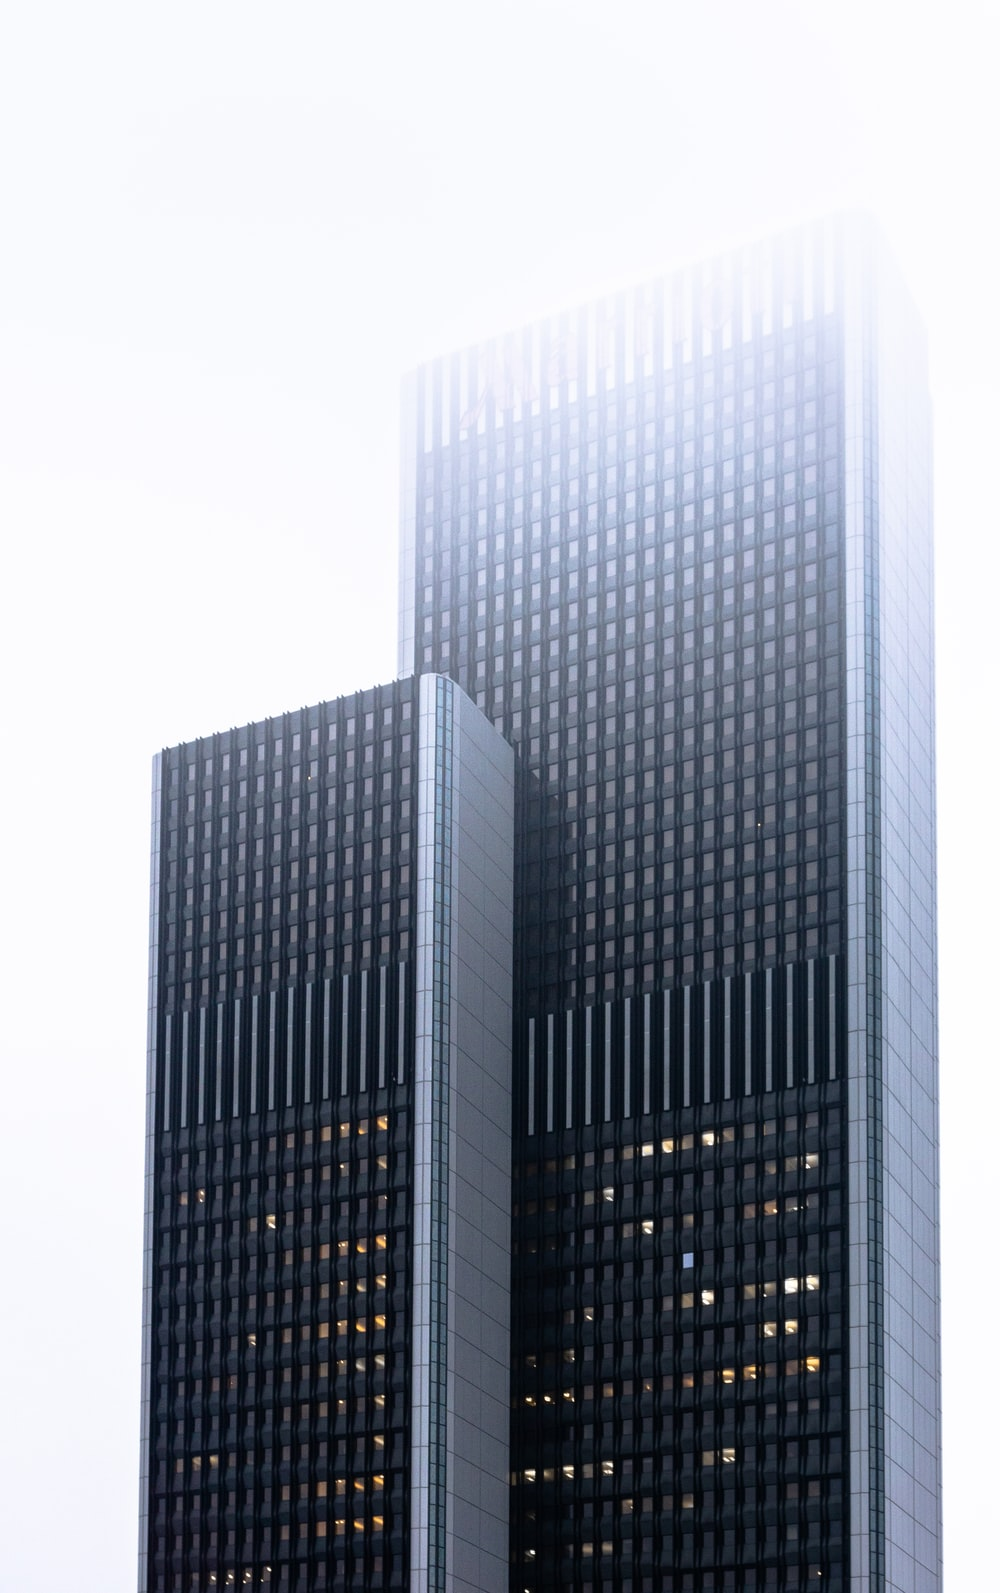 two high-rise buildings